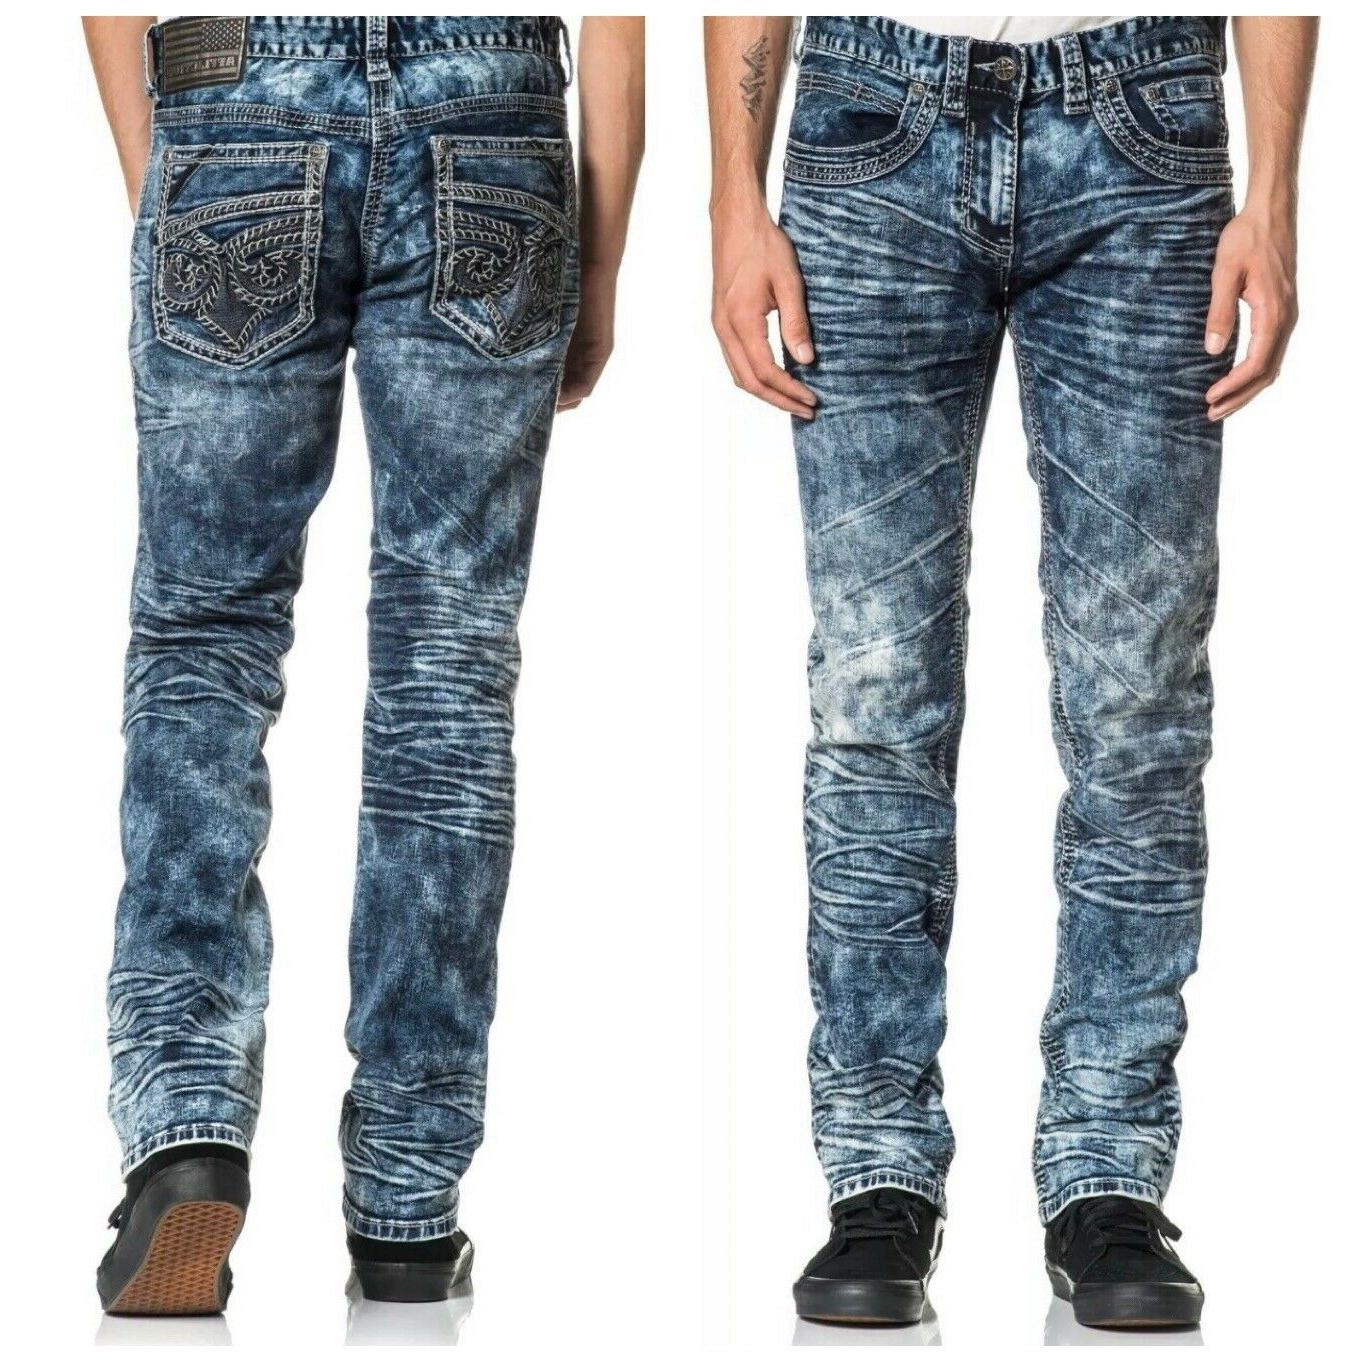 AFFLICTION GAGE FLEUR QUINCY Embroidered BKE B14